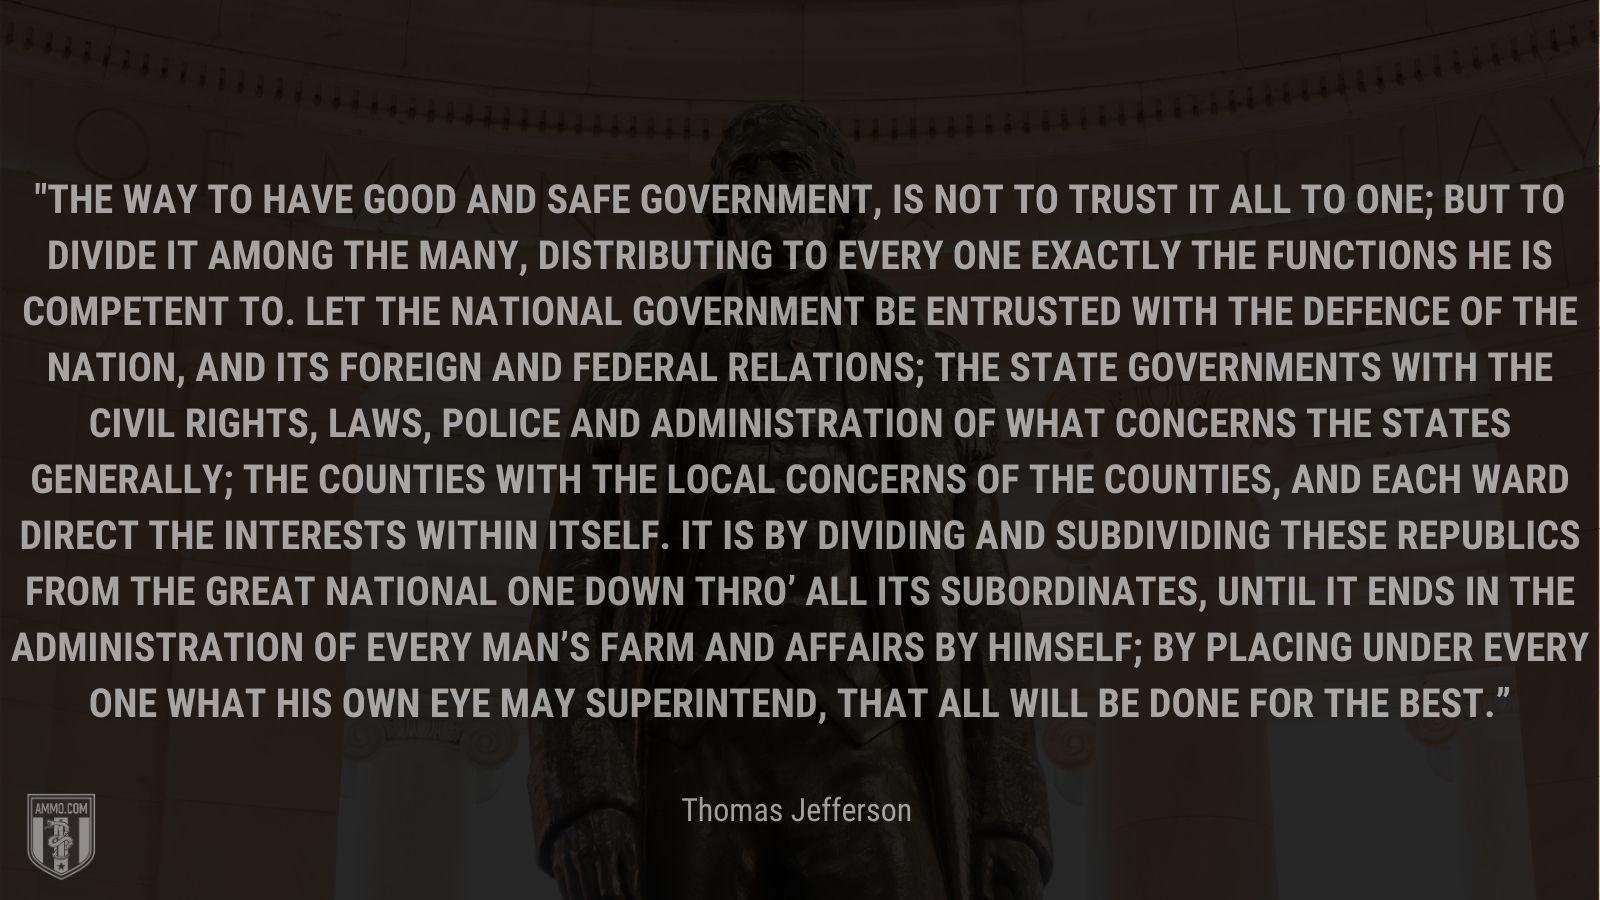 """""""The way to have good and safe government, is not to trust it all to one; but to divide it among the many, distributing to every one exactly the functions he is competent to. Let the National government be entrusted with the defence of the nation, and its foreign and federal relations; the State governments with the civil rights, laws, police and administration of what concerns the states generally; the Counties with the local concerns of the counties, and each Ward direct the interests within itself. It is by dividing and subdividing these republics from the great National one down thro' all its subordinates, until it ends in the administration of every man's farm and affairs by himself; by placing under every one what his own eye may superintend, that all will be done for the best."""" - Thomas Jefferson"""